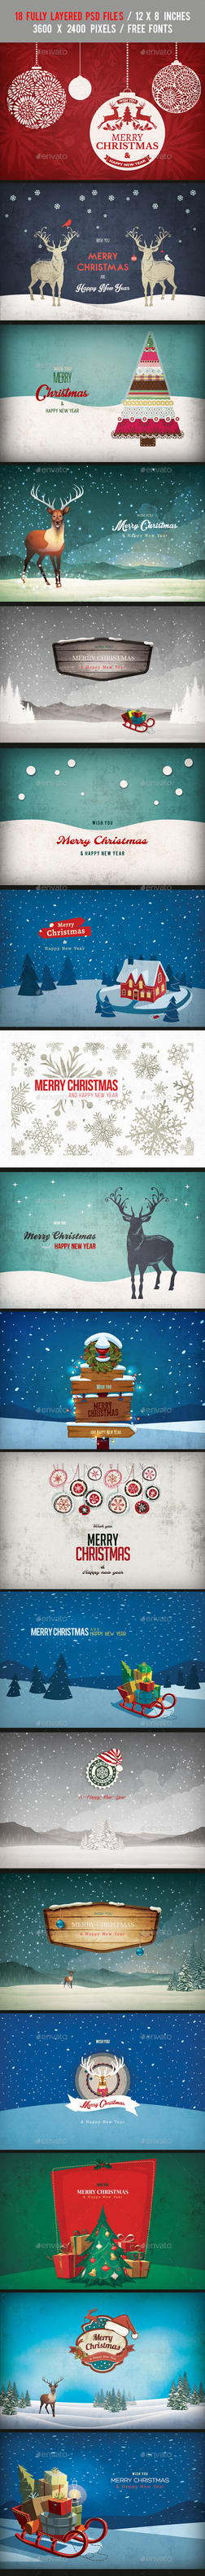 18 Christmas Backgrounds/Cards - Bundle Vol.1 by another-graphic